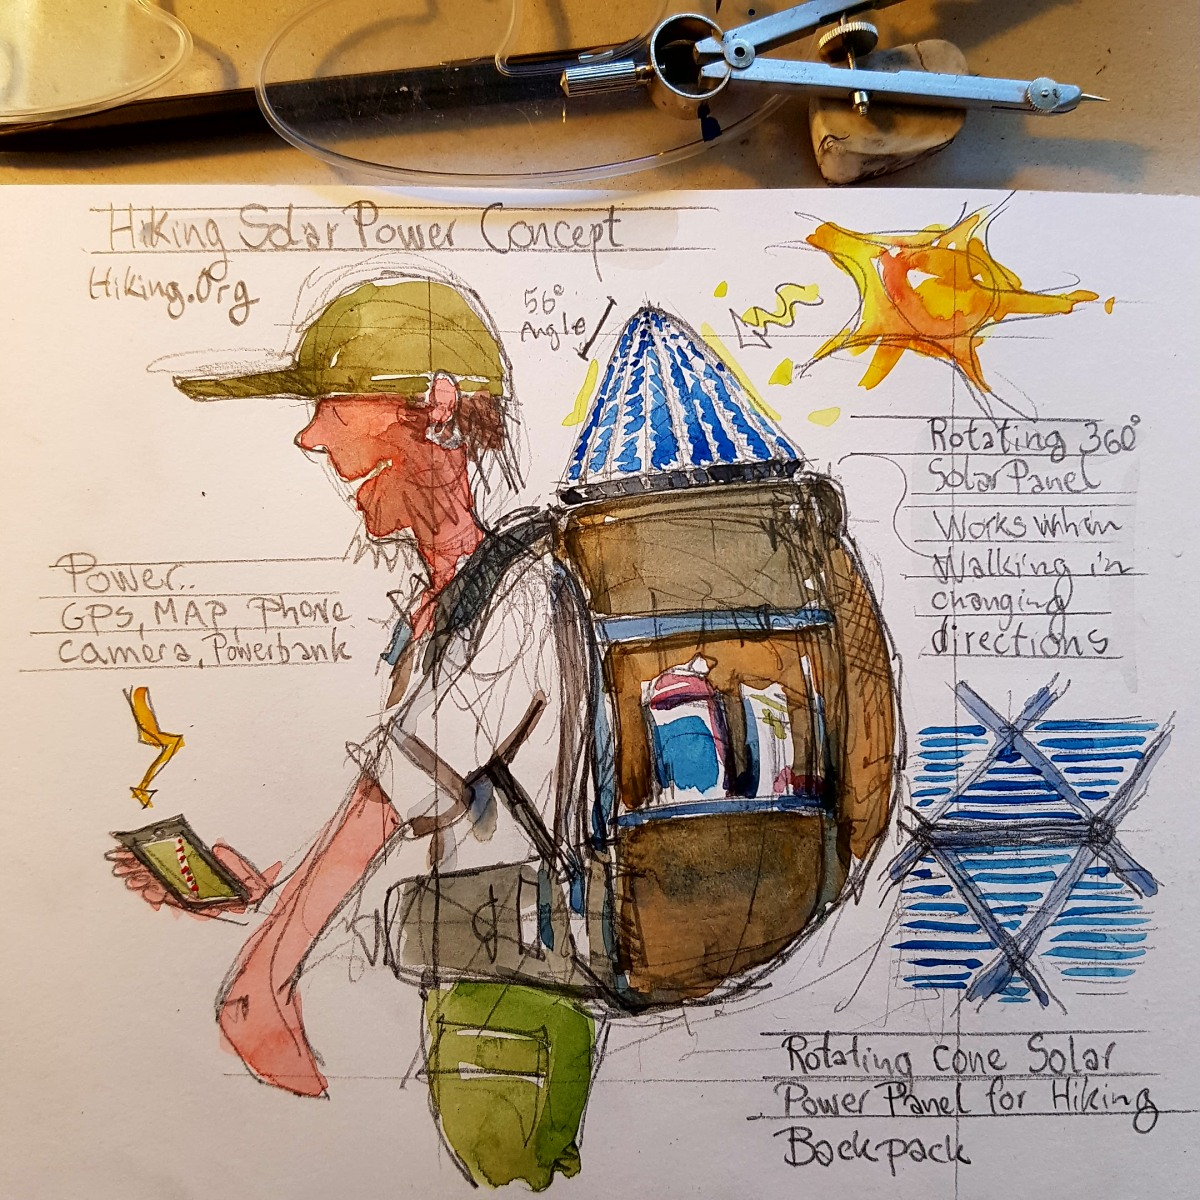 Sketch of a V3Solar power generator mounted on a backpack - drawing by Frits Ahlefeldt